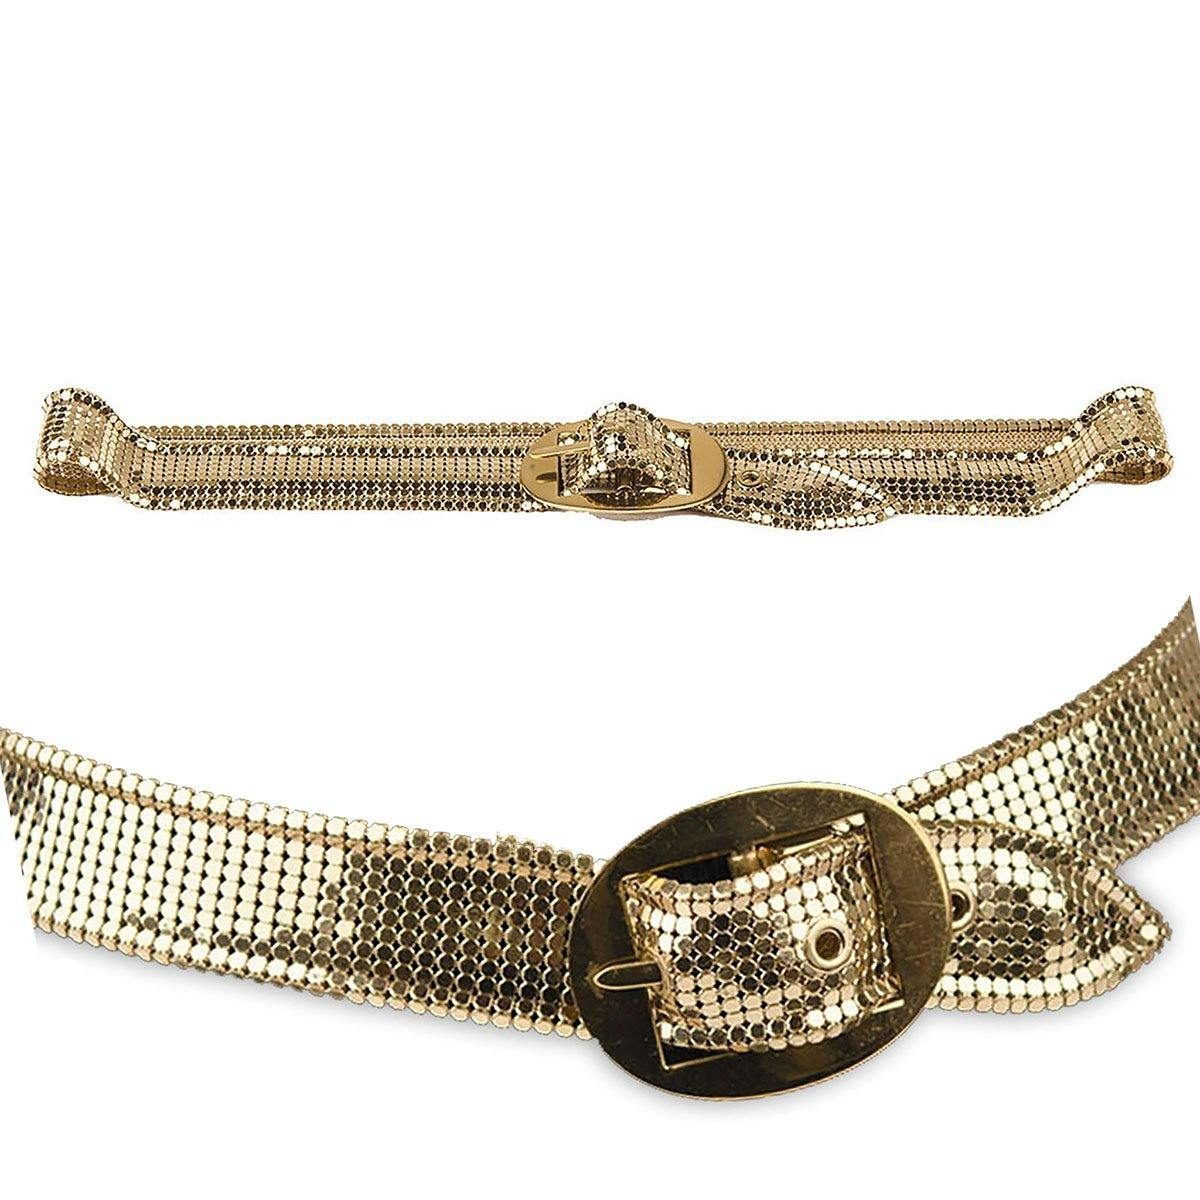 Vintage 80s Whiting Davis Gold Metal Mesh Belt, Schaffer Belts, Oval Buckle